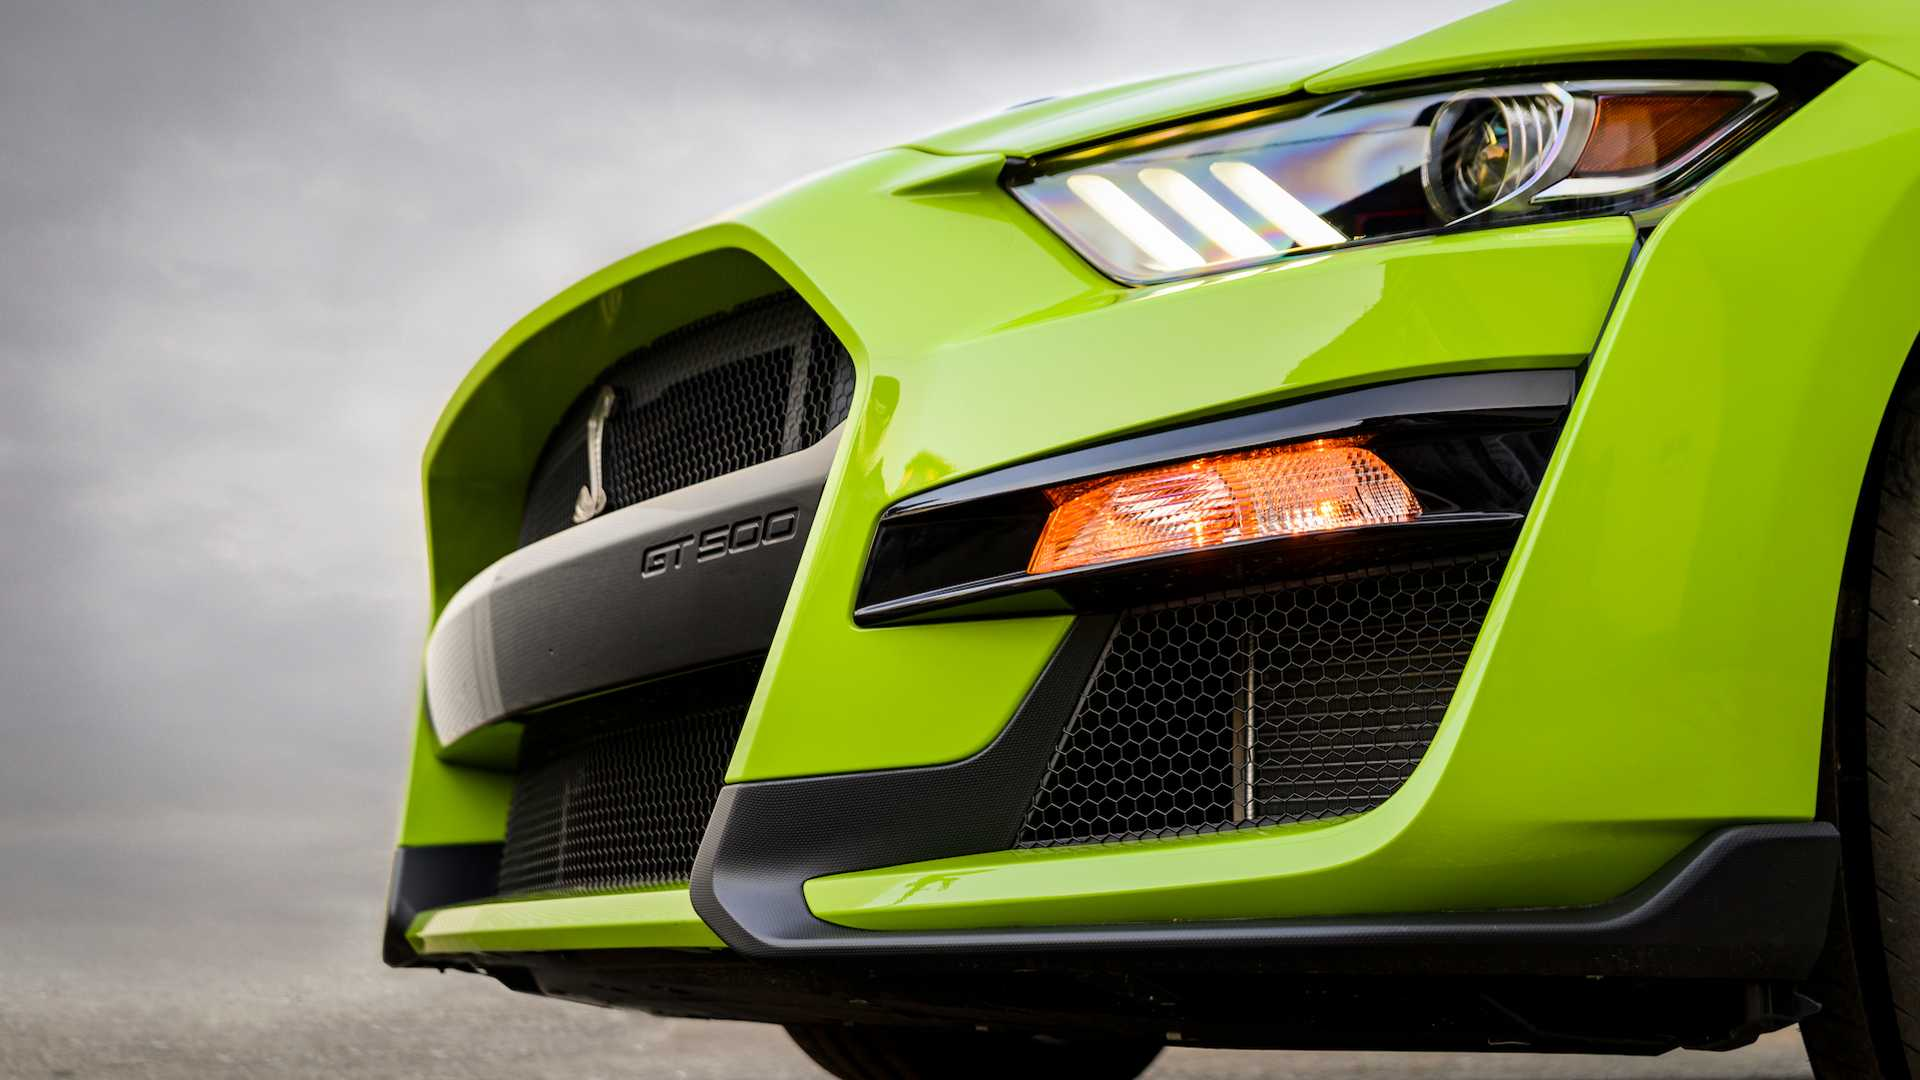 Ford-Mustang-Shelby-GT500-by-Peicher-US-Cars-4